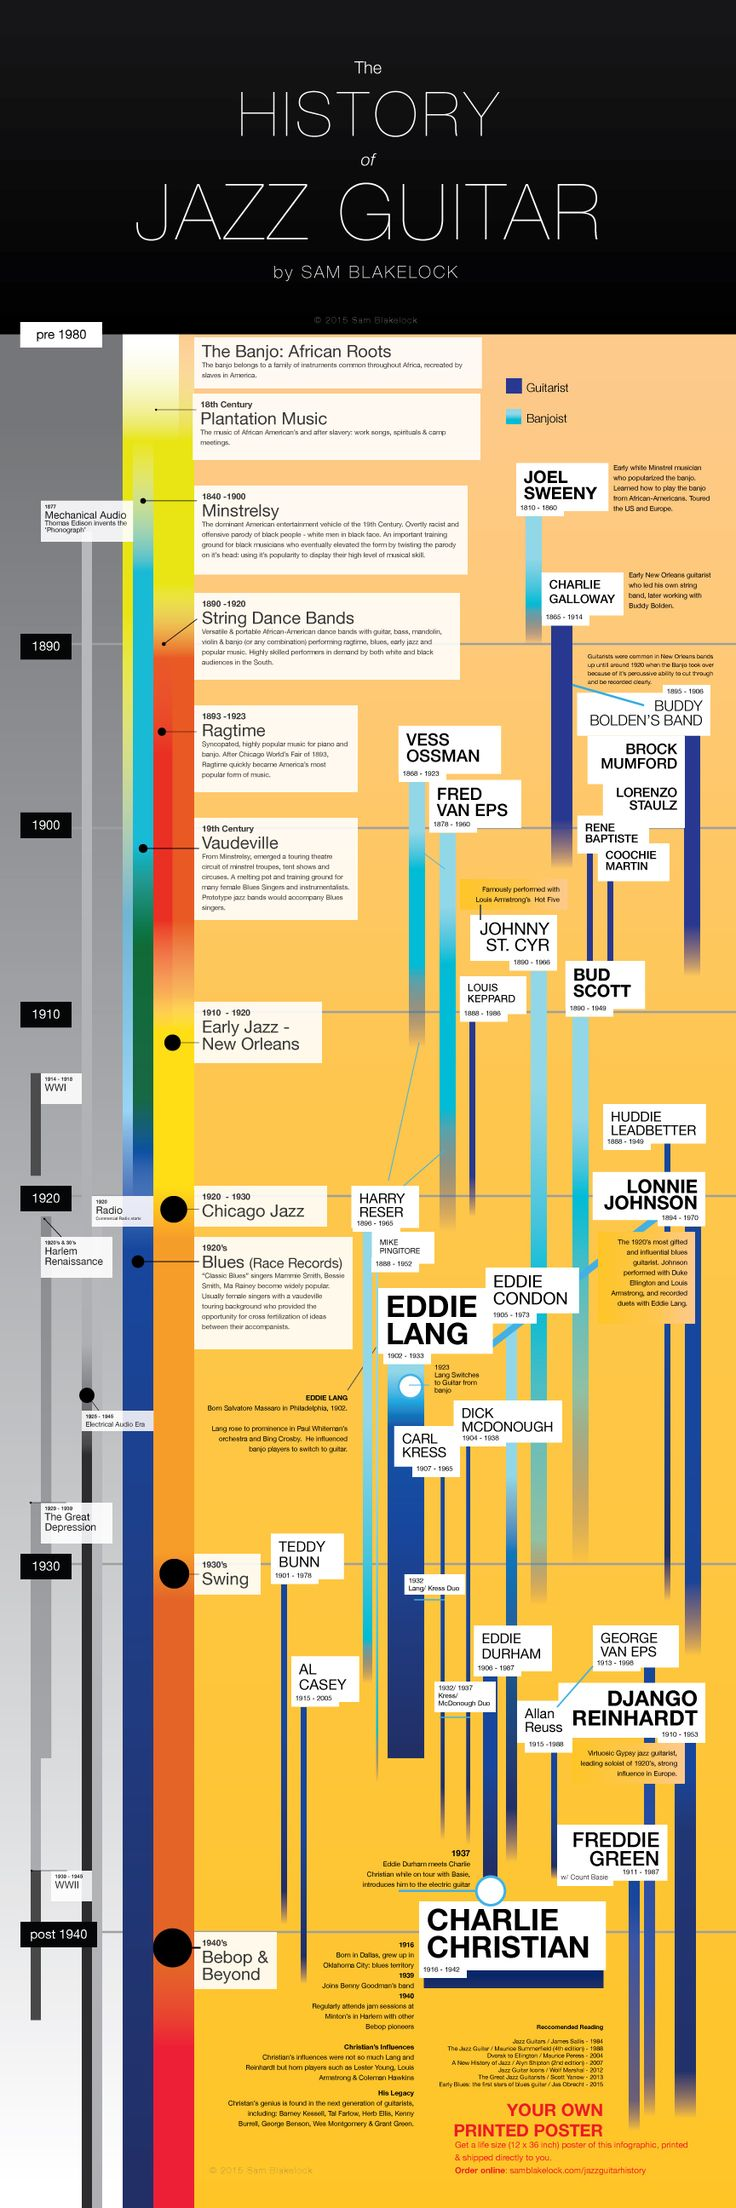 The History of Jazz Guitar Infographic covers the most famous jazz guitarist up until Charlie Christian. http://samblakelock.com/jazzguitarhistory/